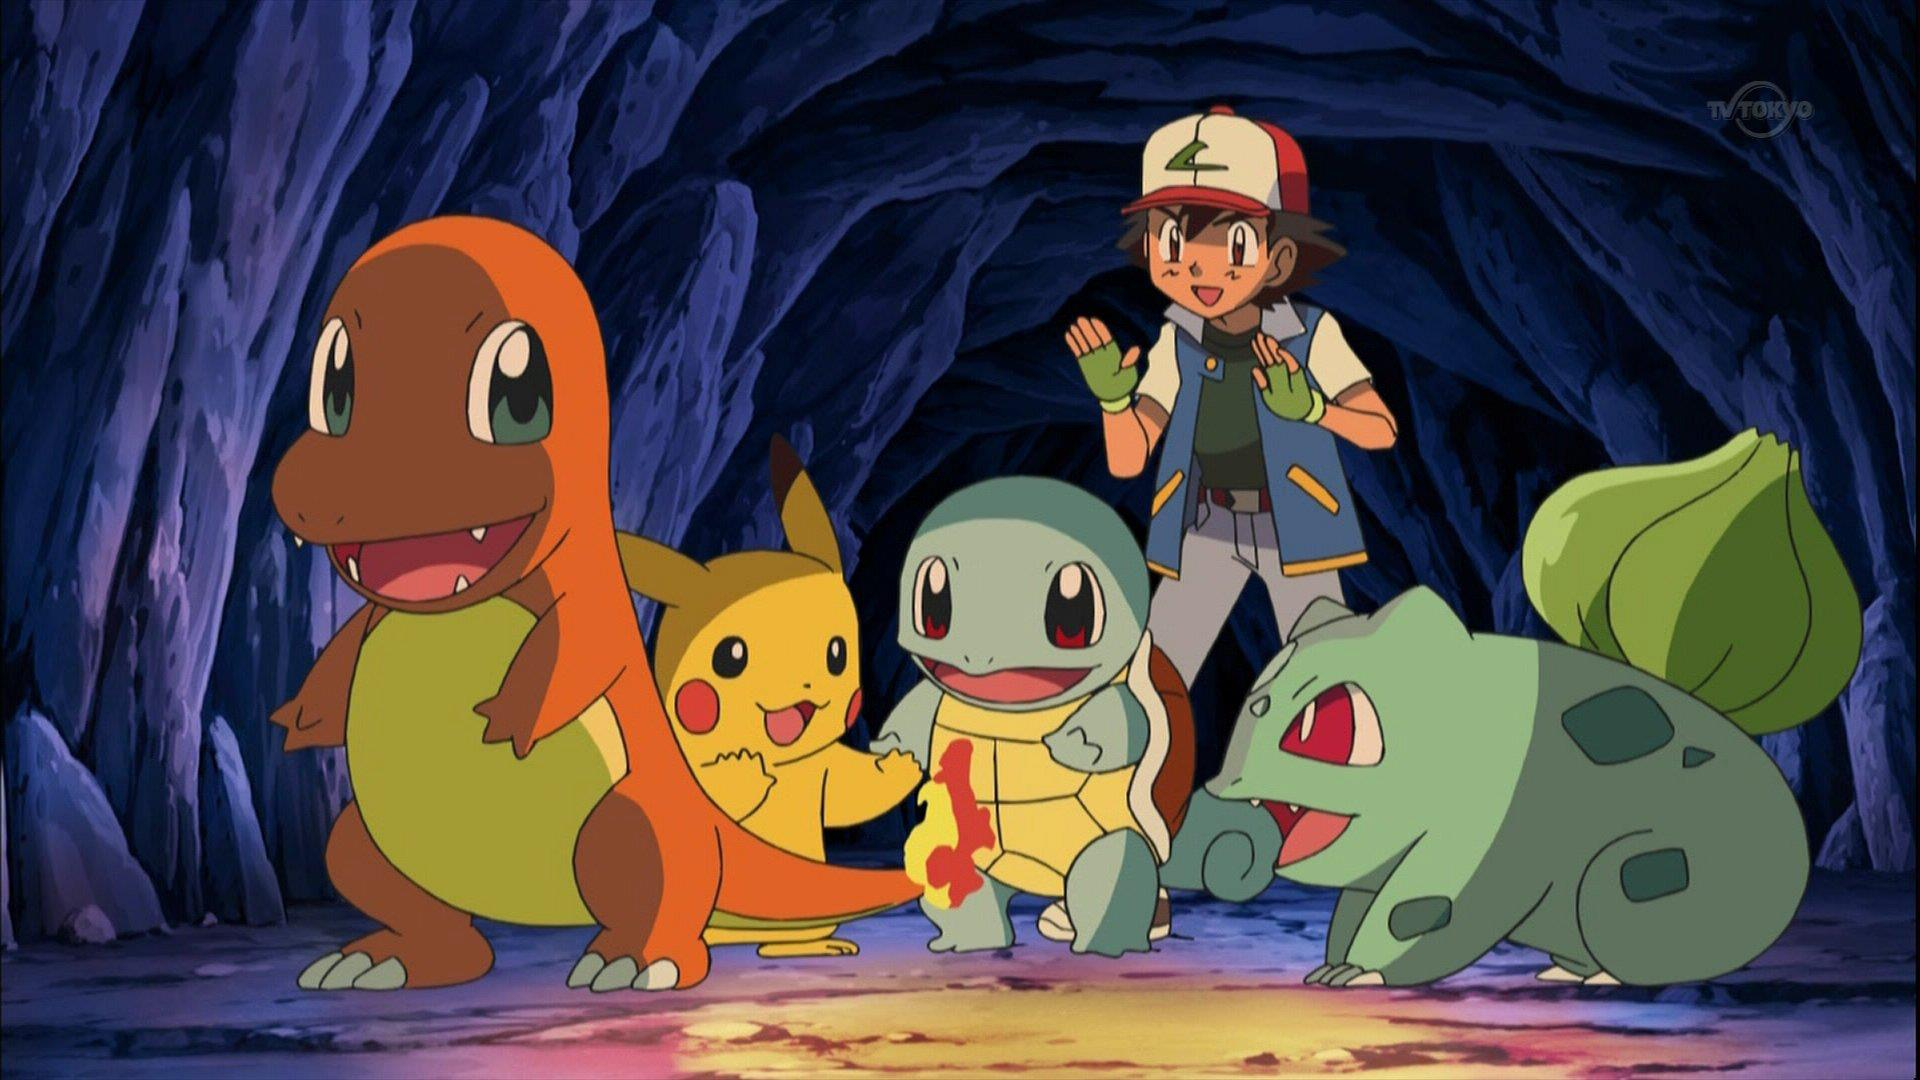 Does anyone have a link to a wallpaper size of this picture?? : pokemon